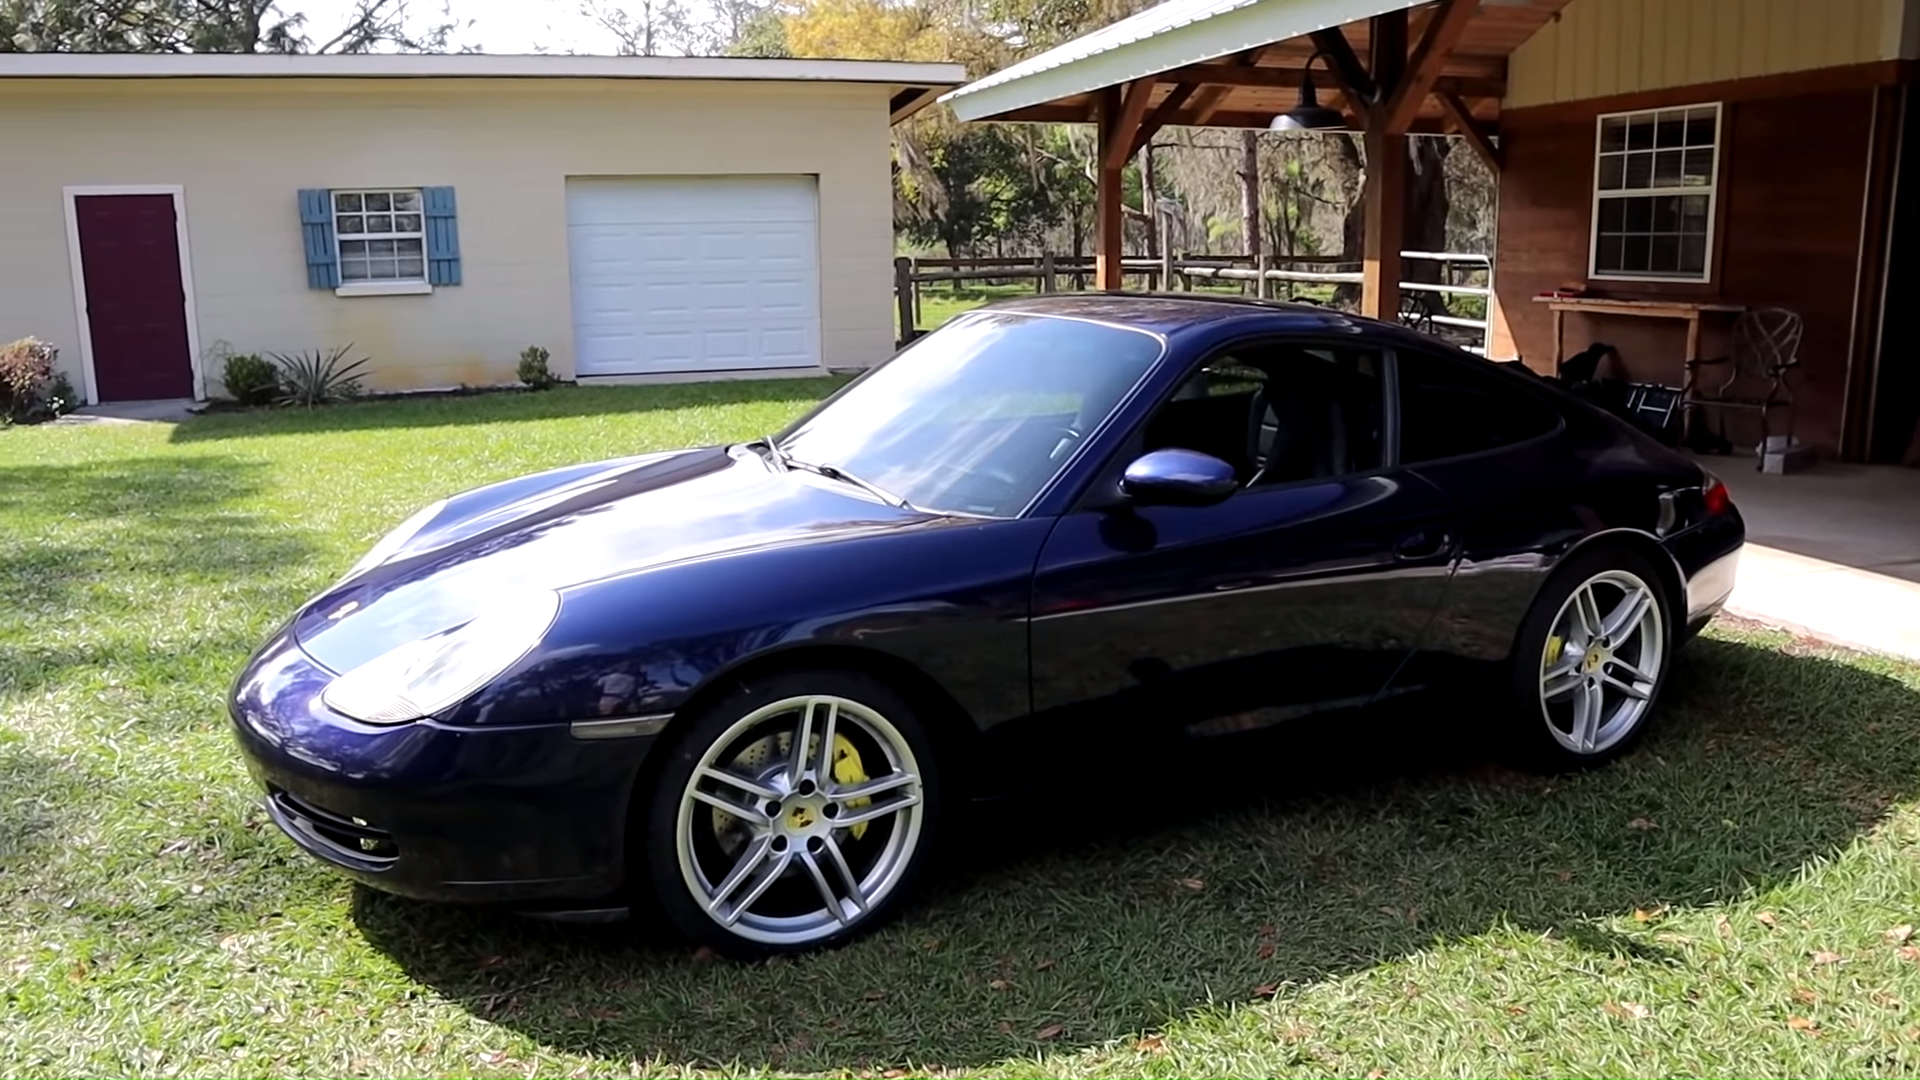 Here's What It Takes To Get A $4000 Totaled 996 Porsche 911 Back On The Road